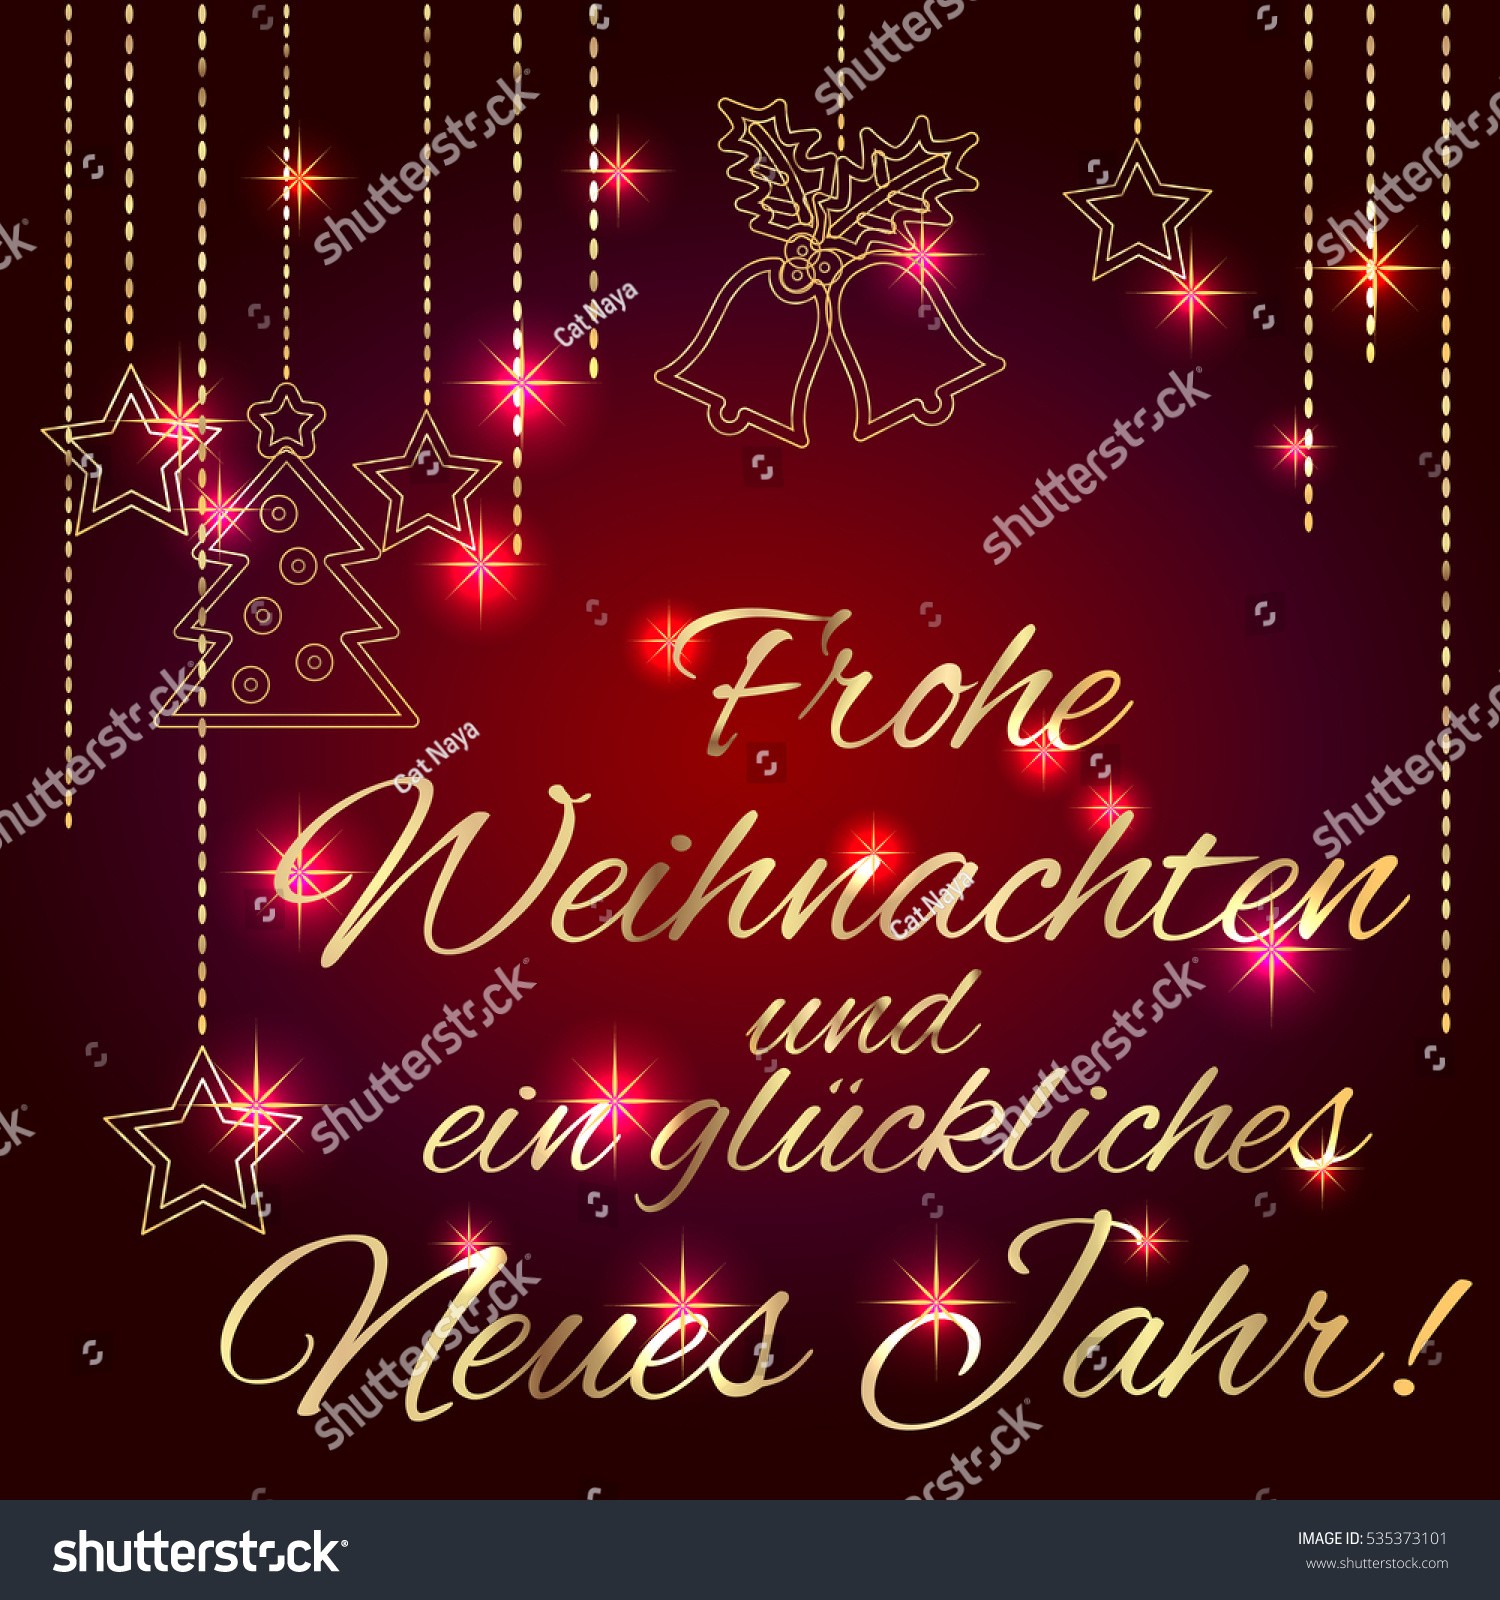 merry christmas and happy new year card template with greetings in german language luxury